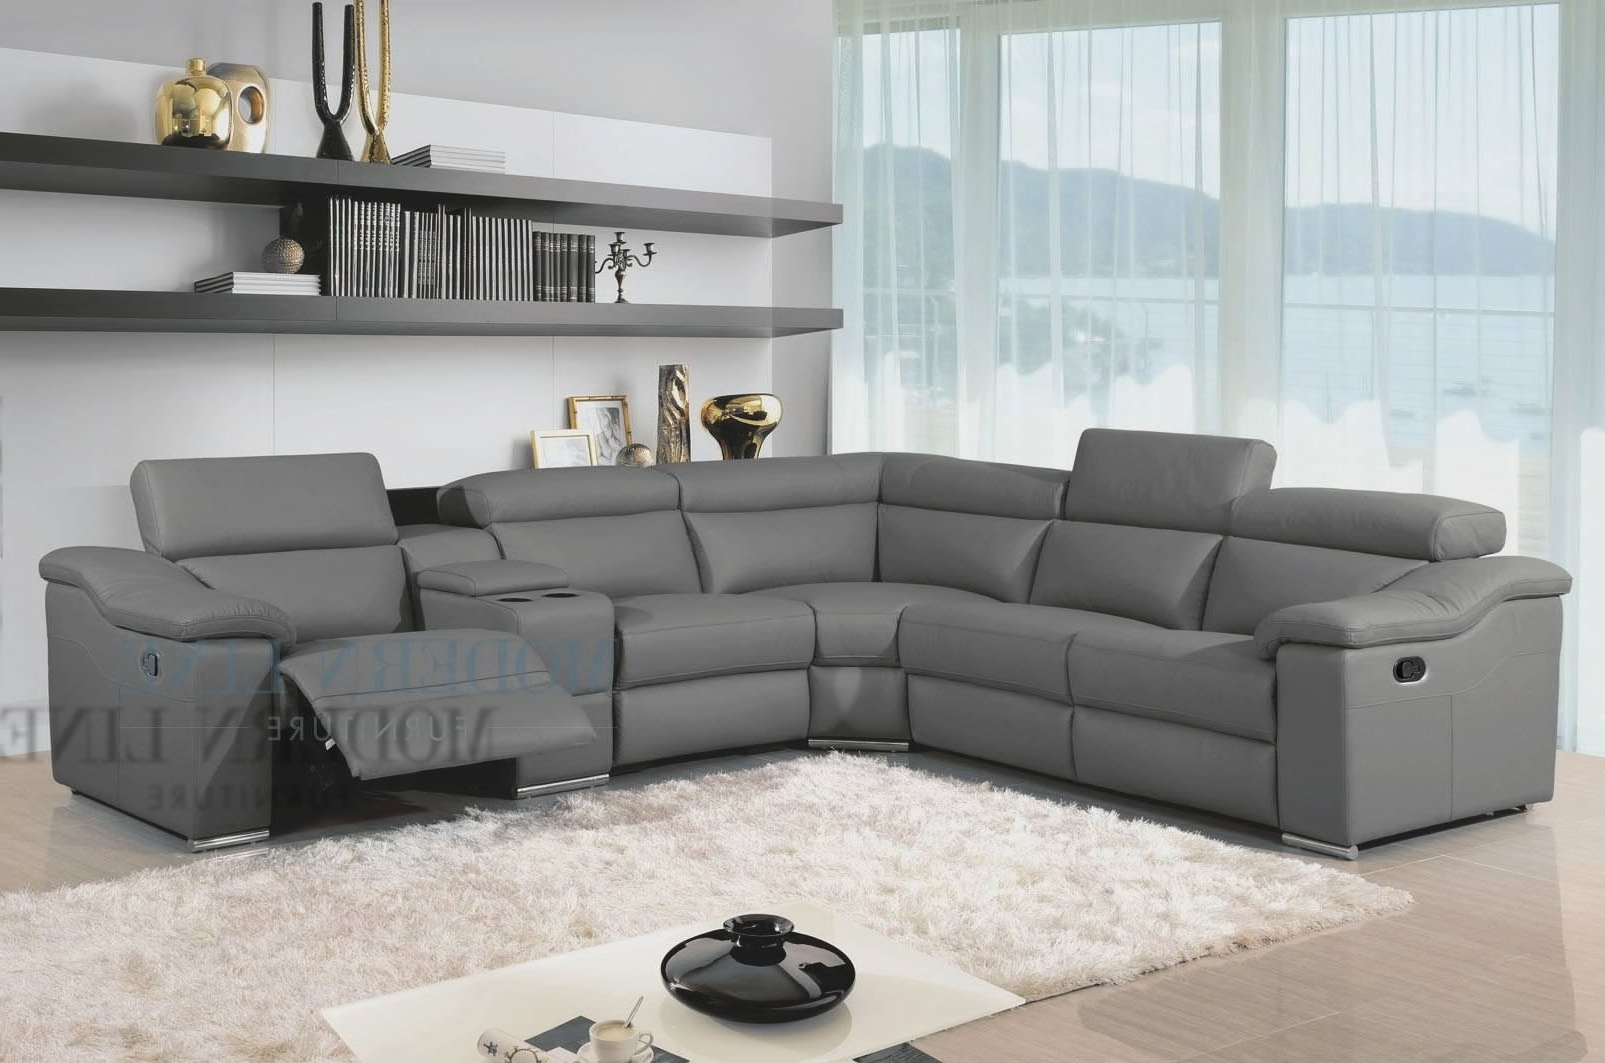 2018 Gray Sectional Sofas With Chaise Pertaining To Sectional Sofa Design: Grey Leather Sectional Sofa Chaise (View 10 of 15)